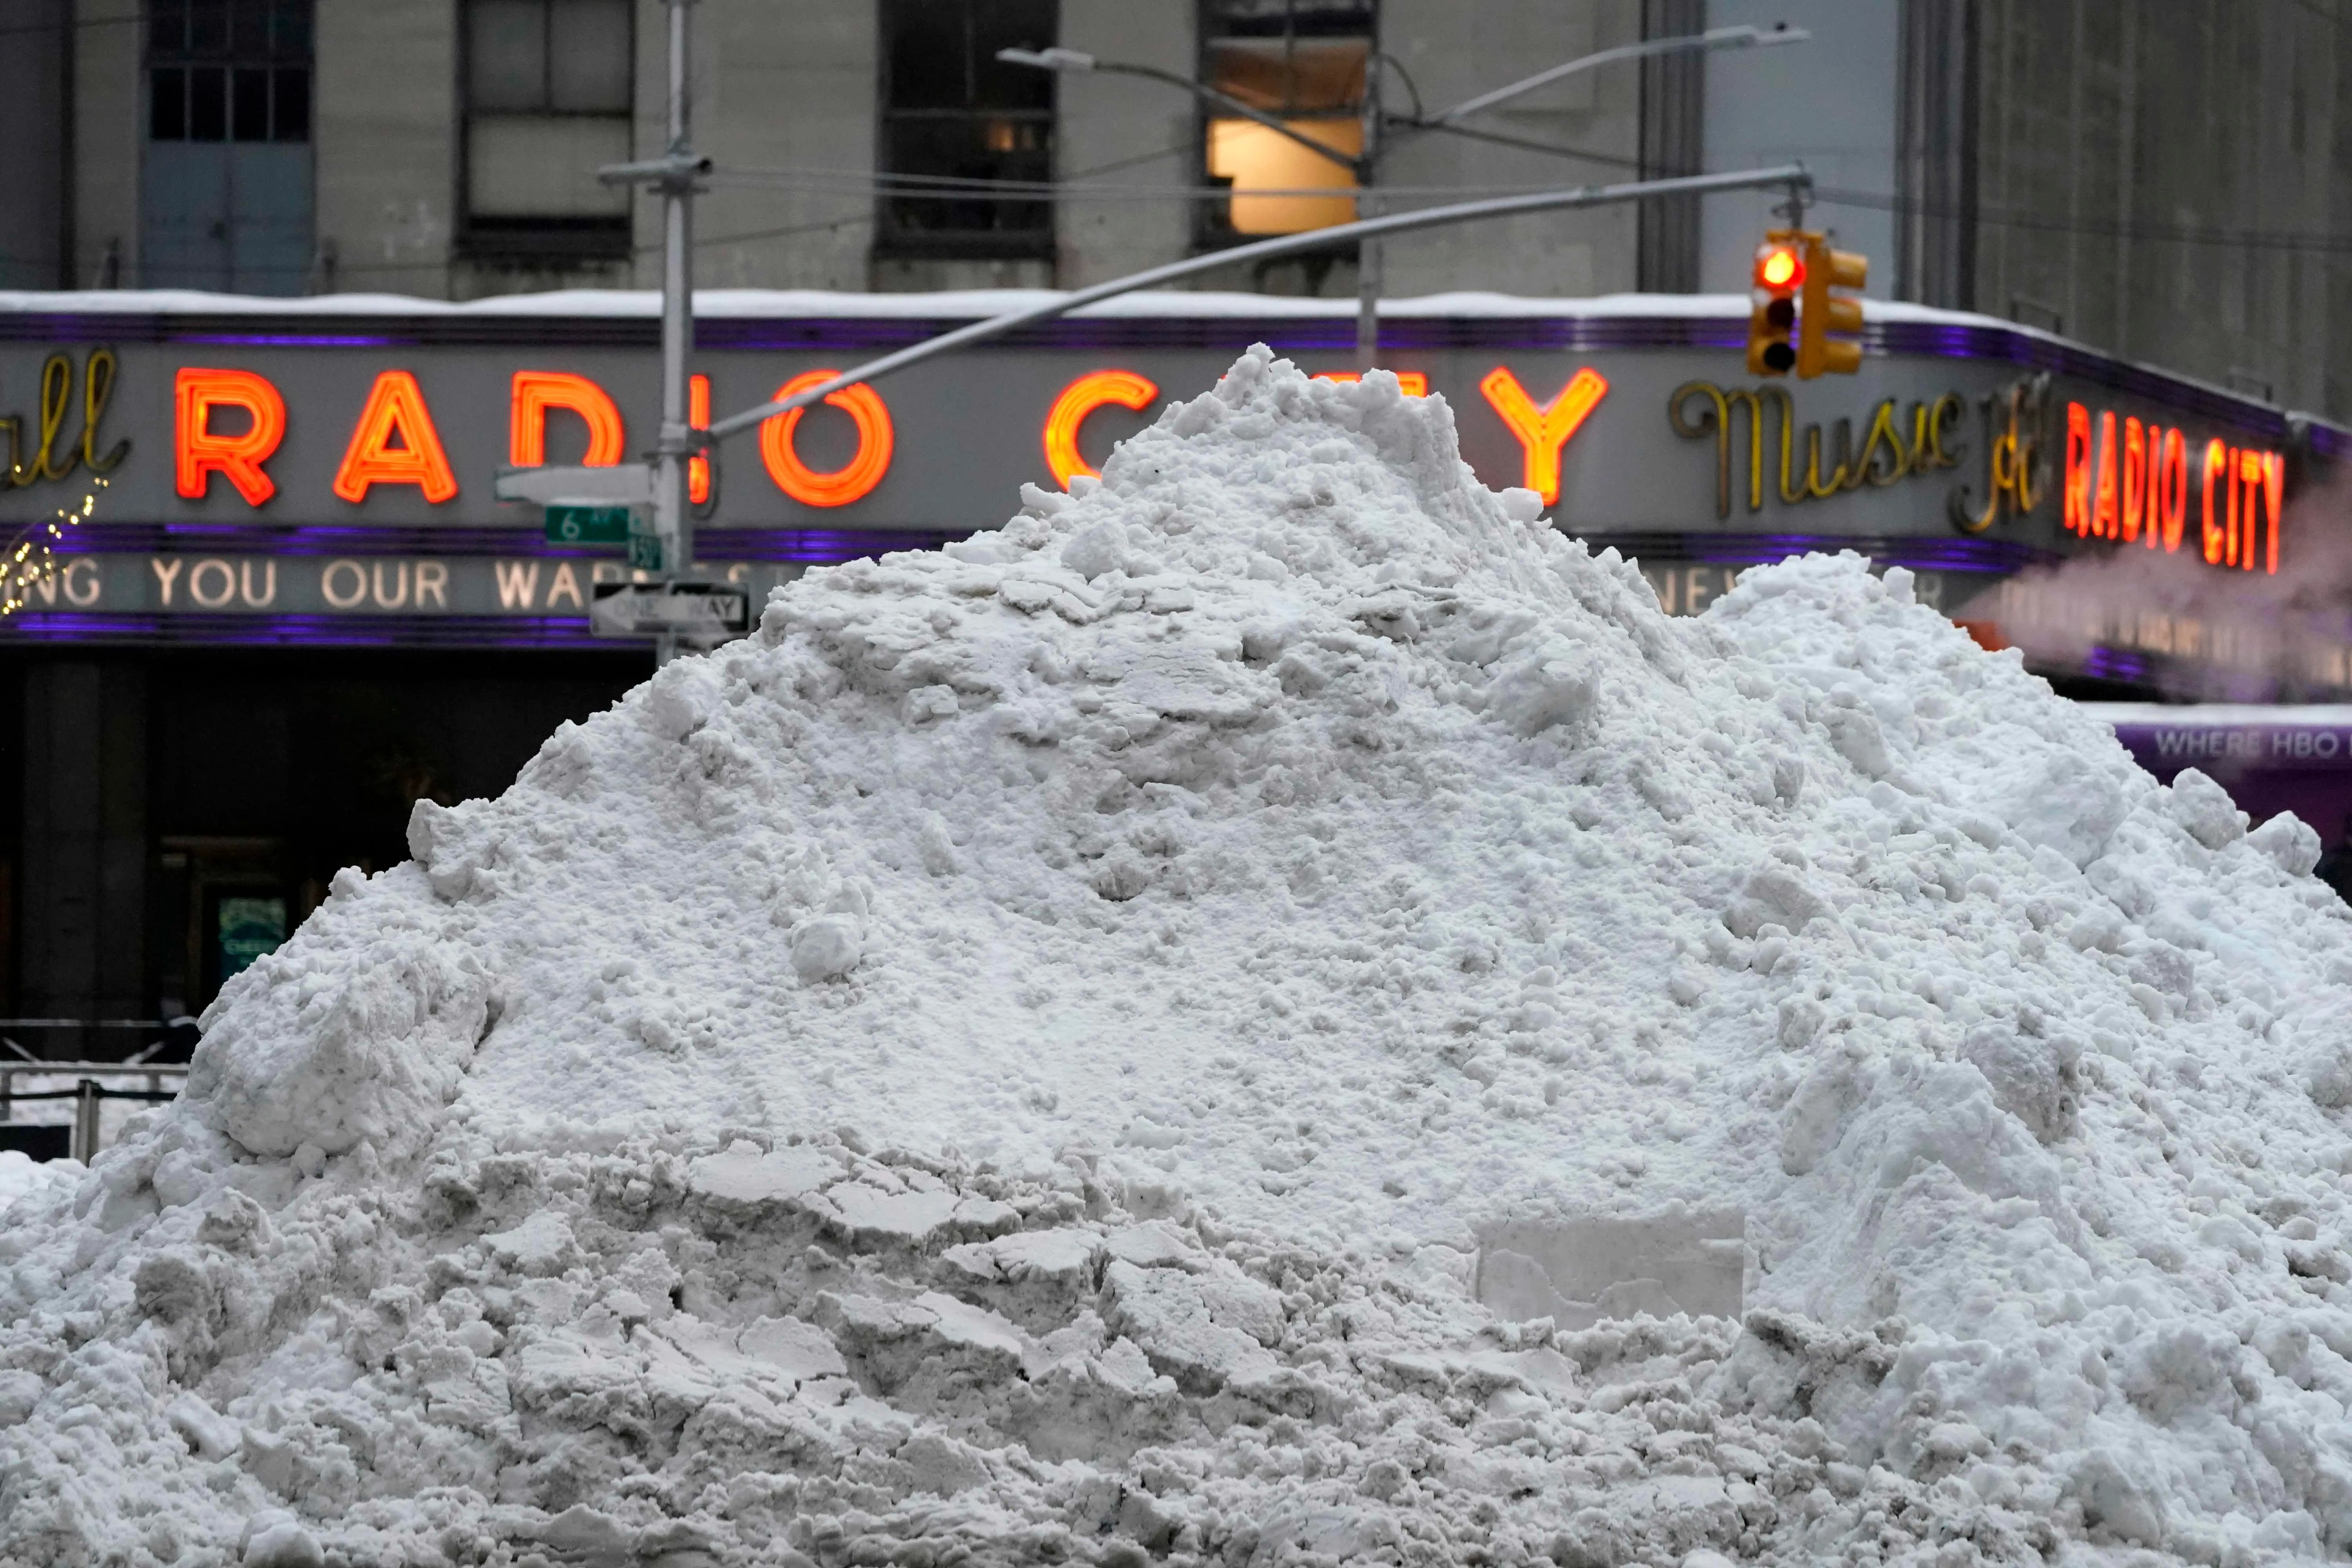 A mound of snow is seen outside Radio City Music Hall in New York on Feb. 2, 2021